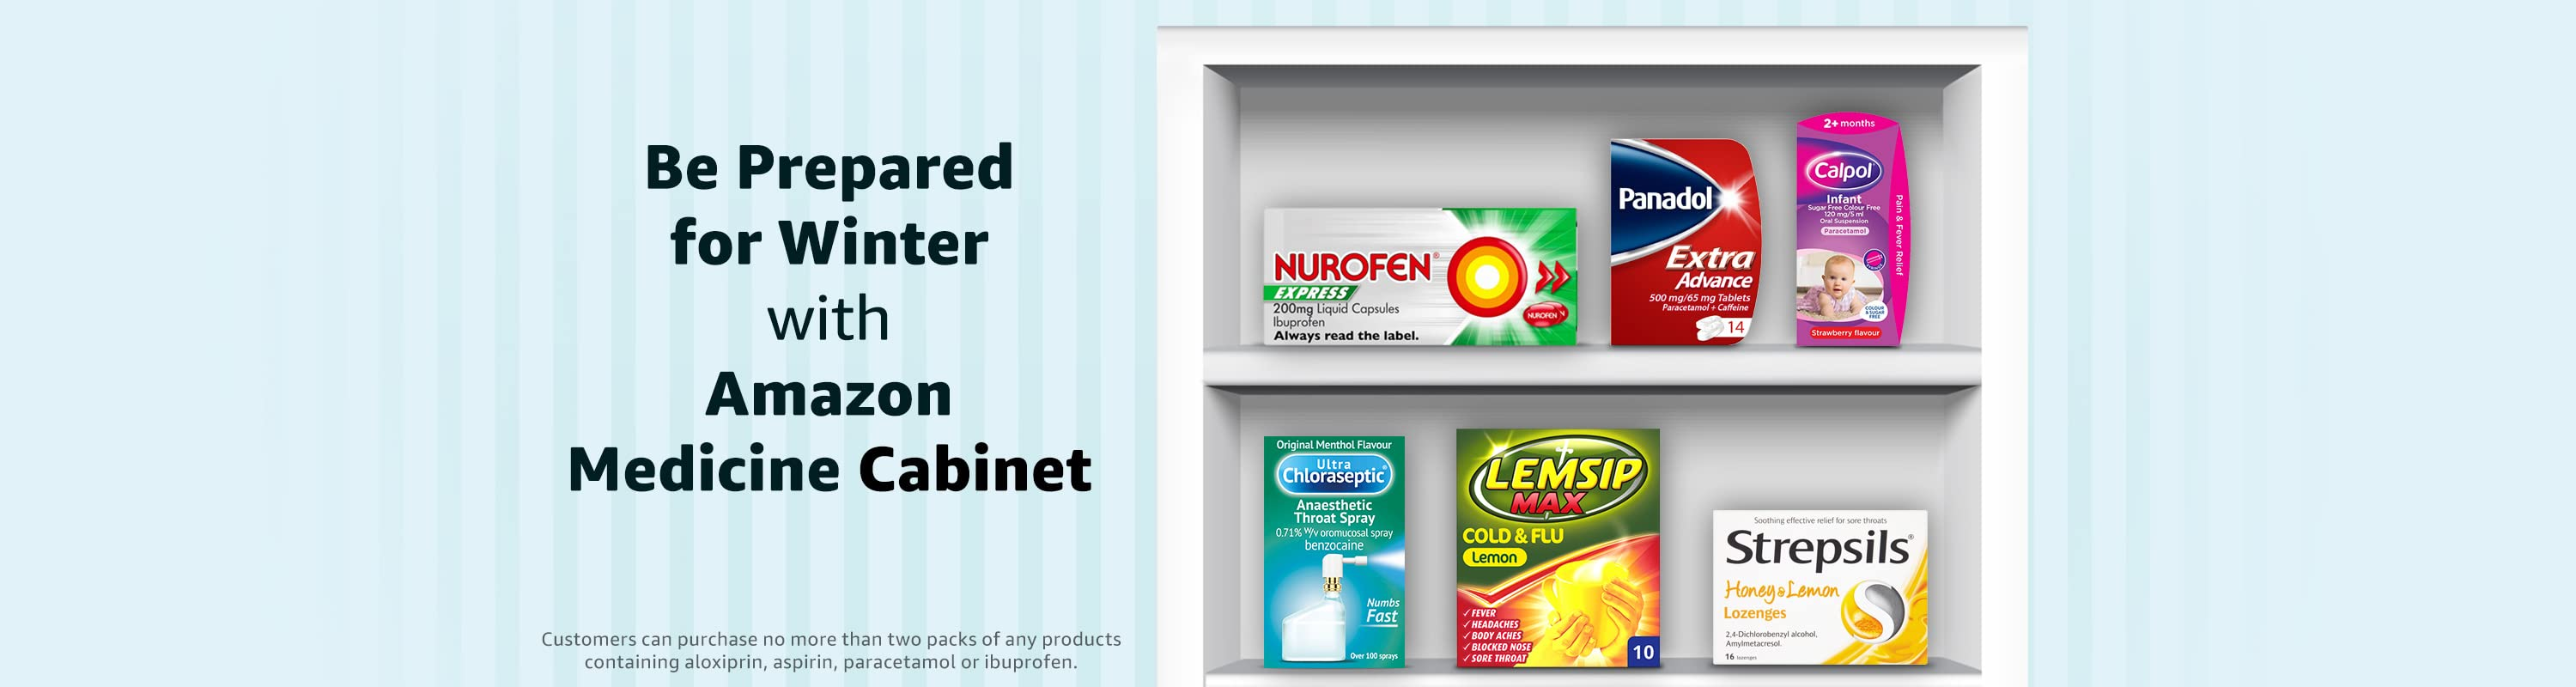 Be Prepared for Winter with Amazon Medicine Cabinet